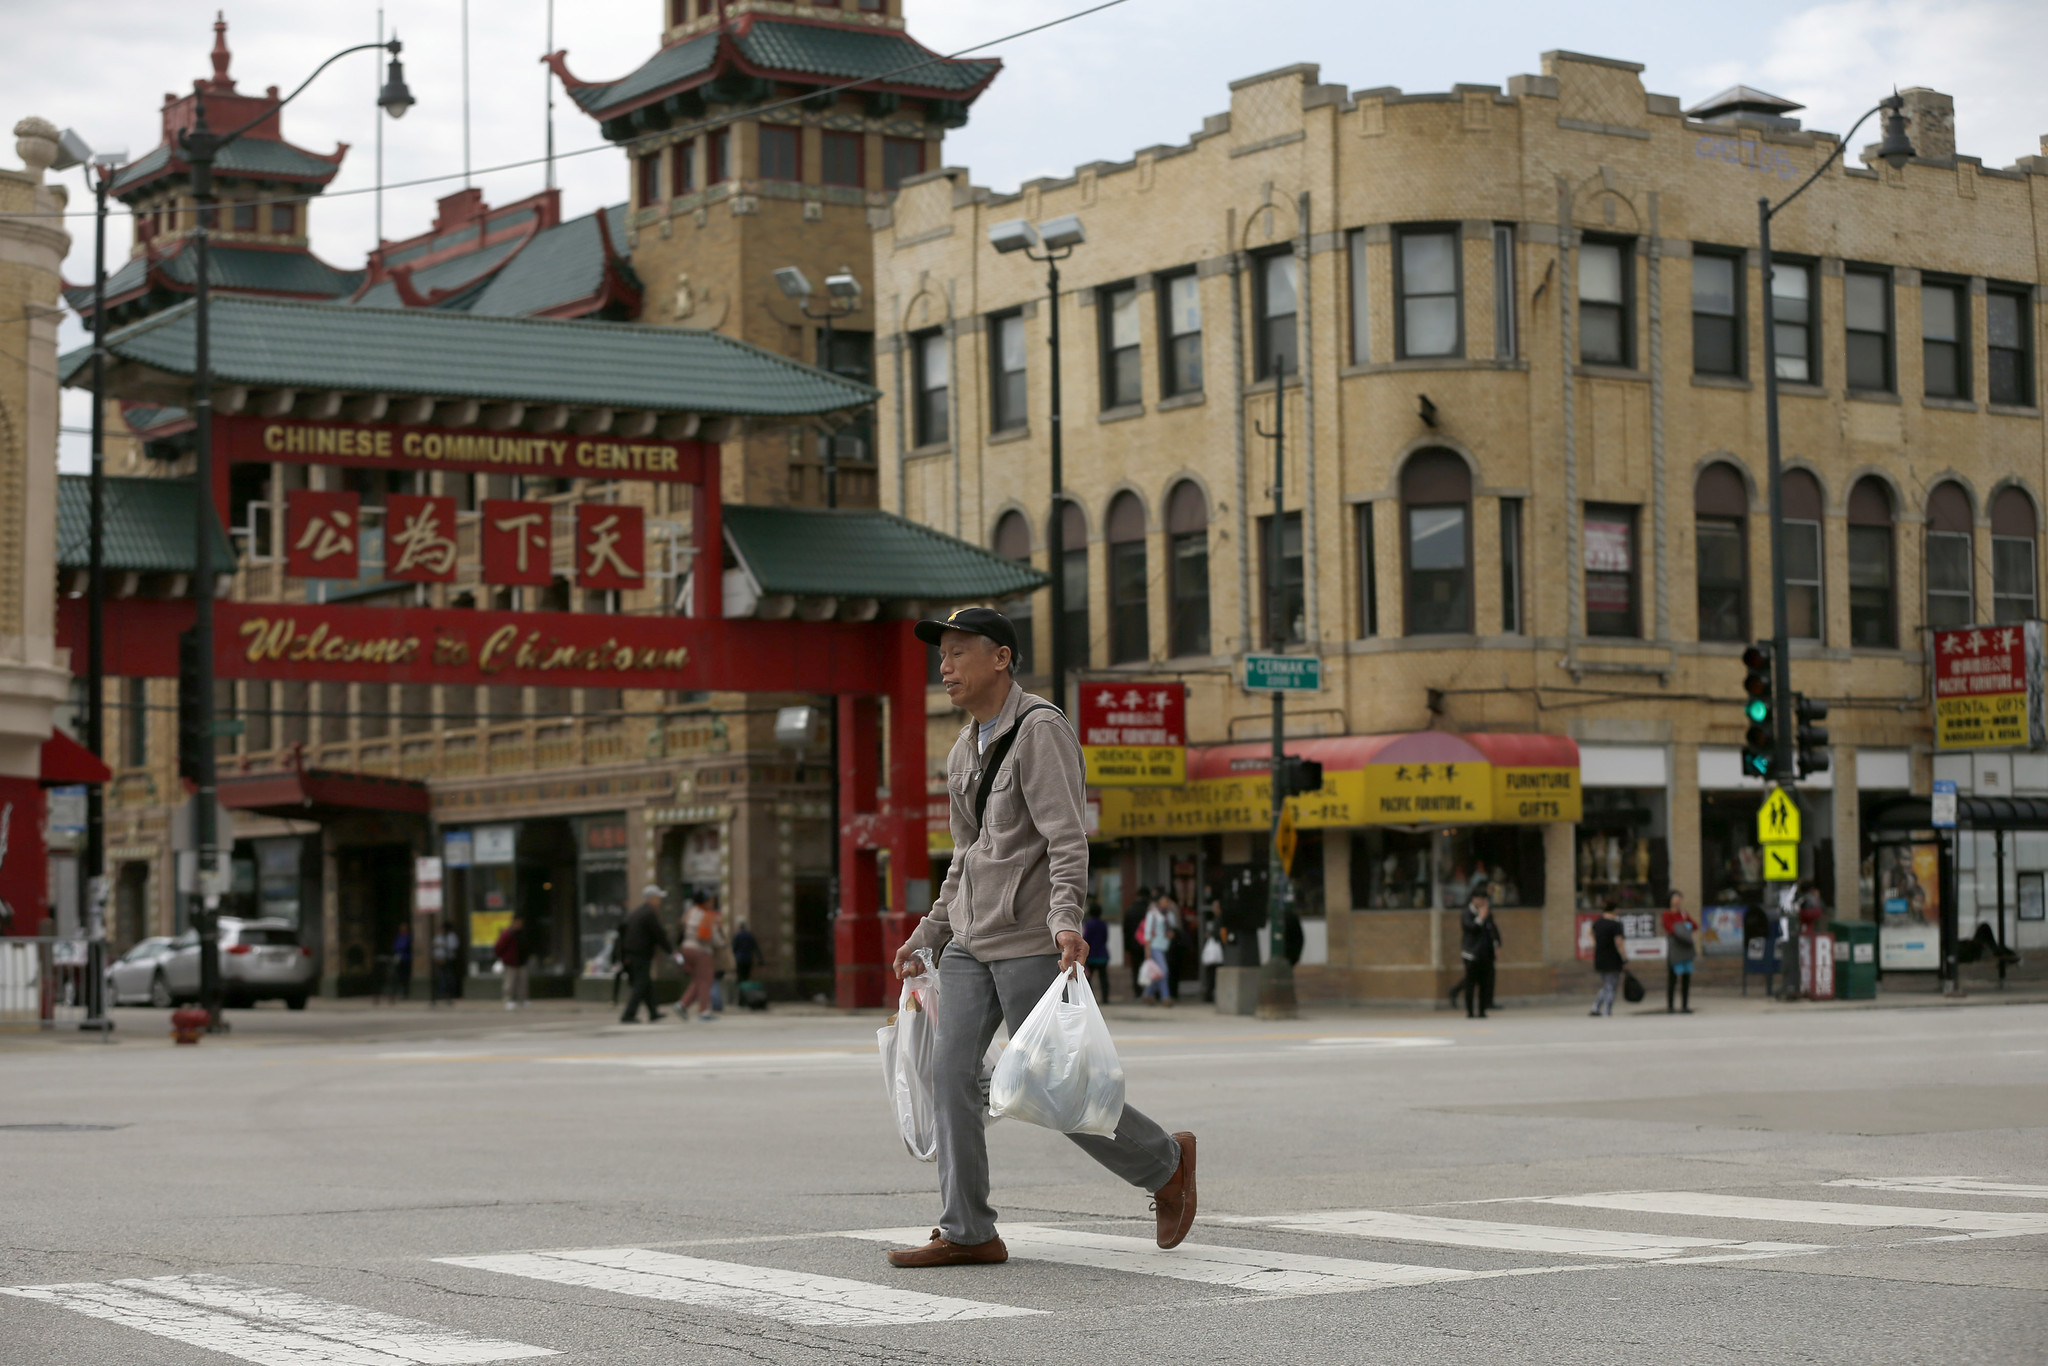 Here S Why Chicago Chinatown Is Booming Even As Others Across The U Fade Tribune